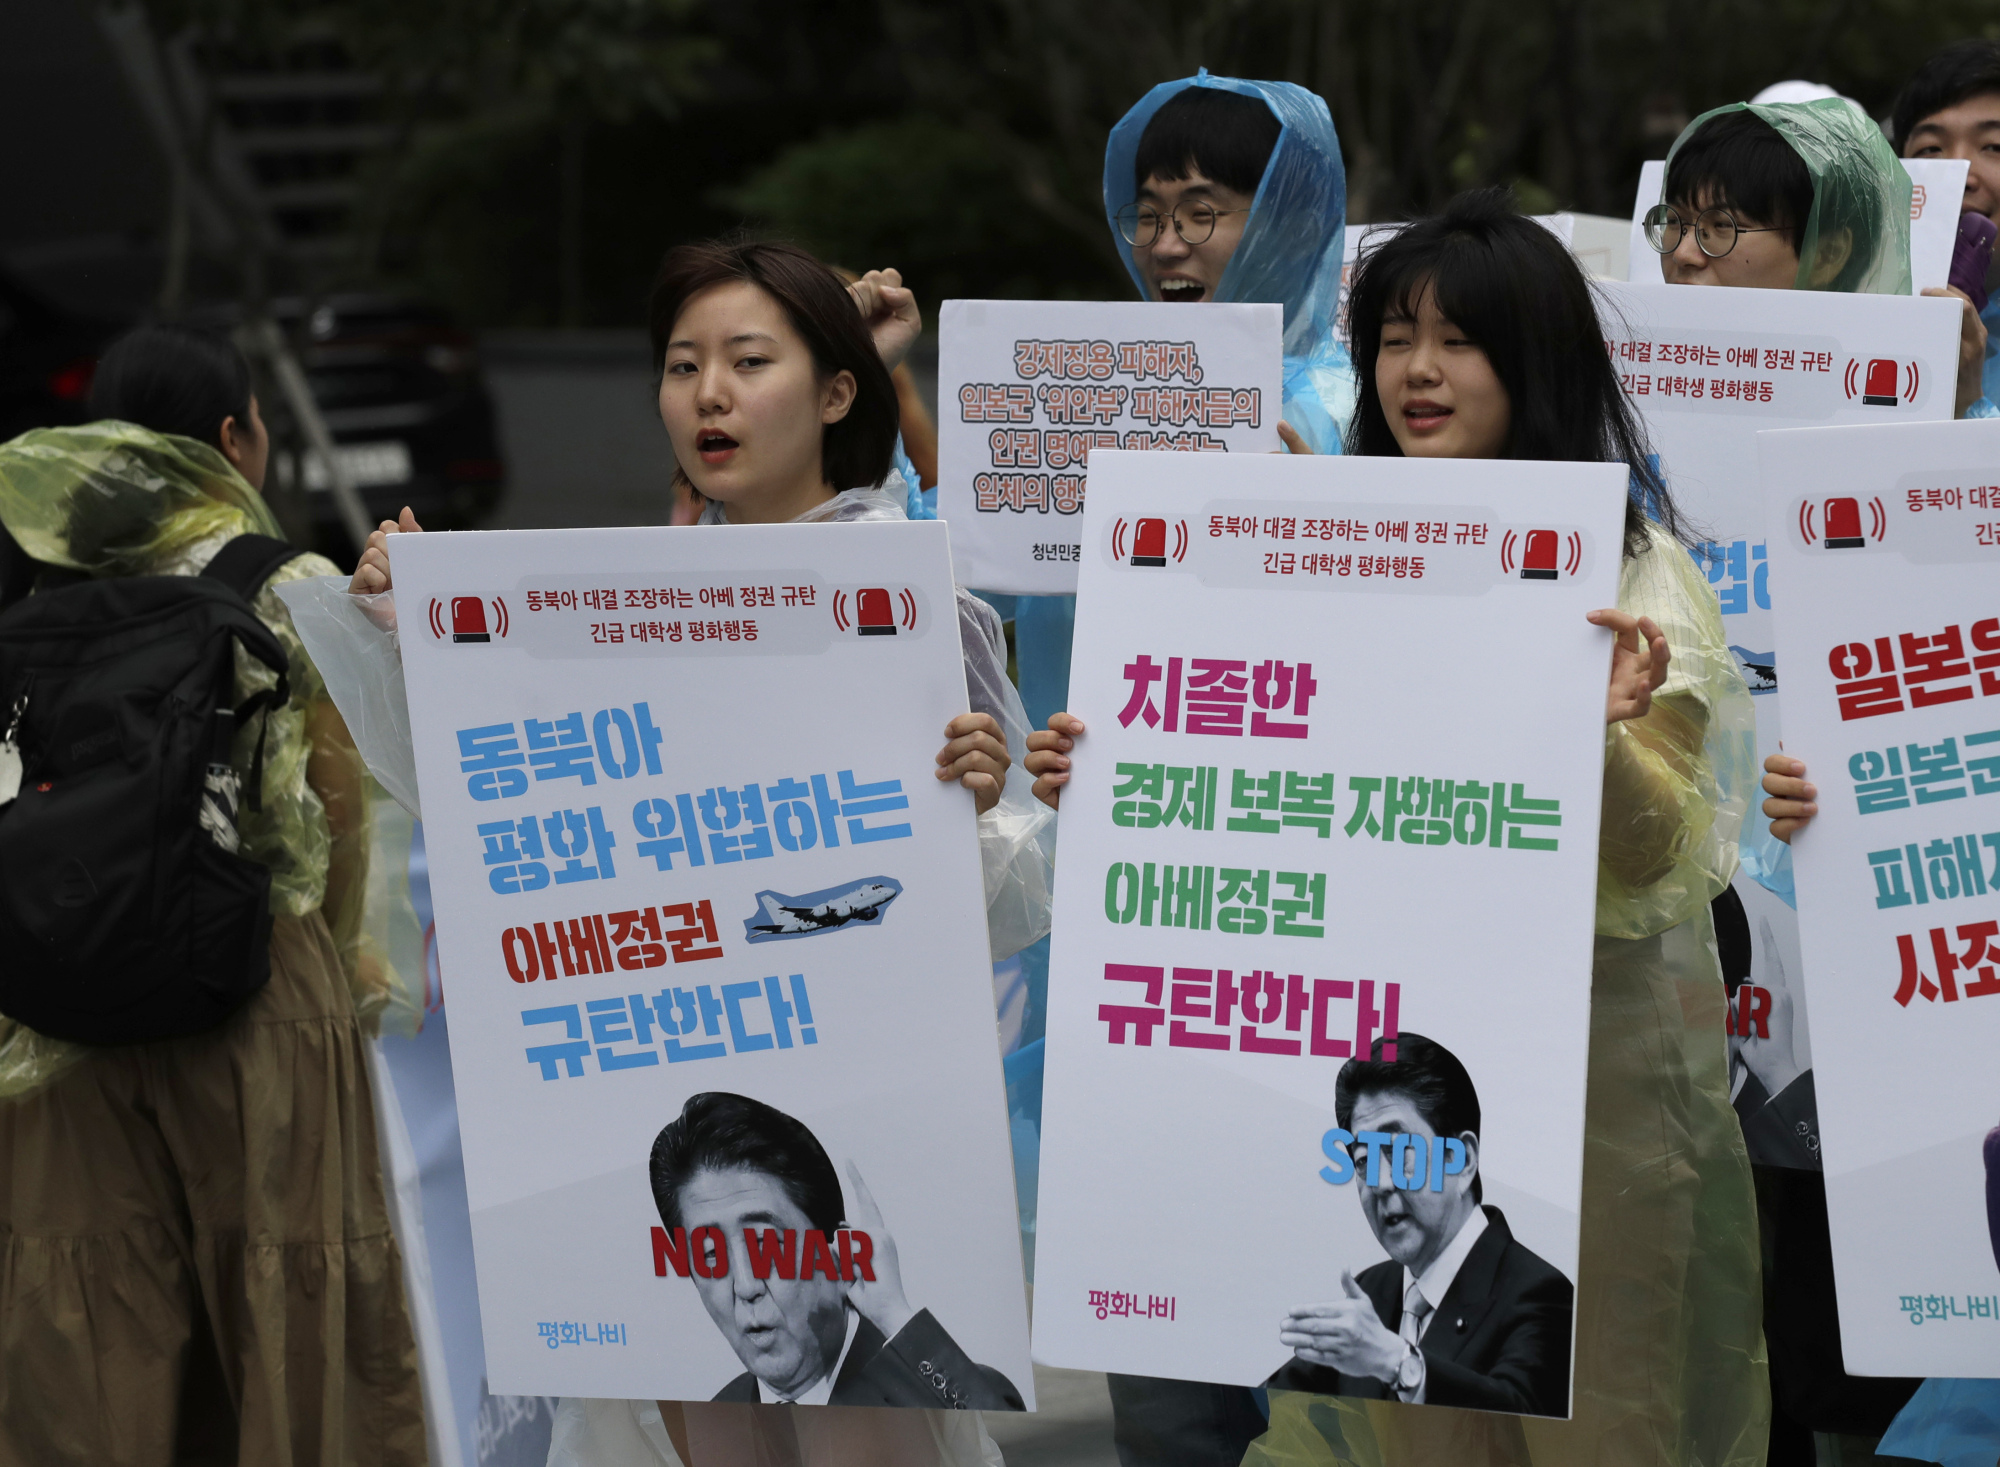 South Korean students shout slogans as they march to denounce the Japanese government's decision to impose some restrictions on exports, near the Japanese Embassy in Seoul on Wednesday. | AP